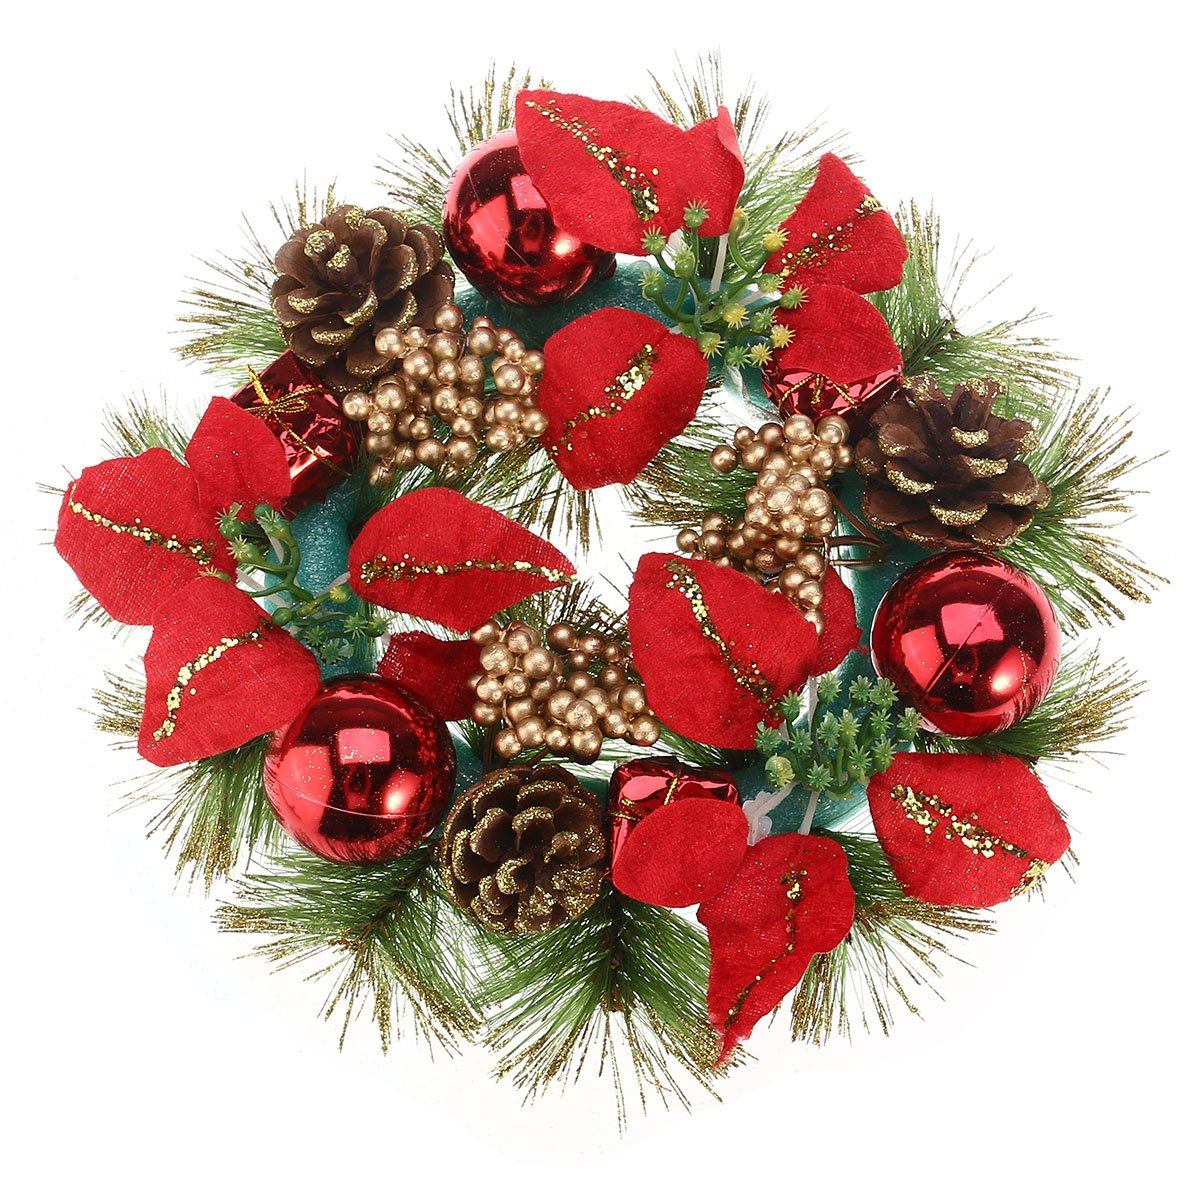 OULII Christmas Door Wreath with Pine Cones Poinsettia Christmas Balls Ornaments 30cm Red